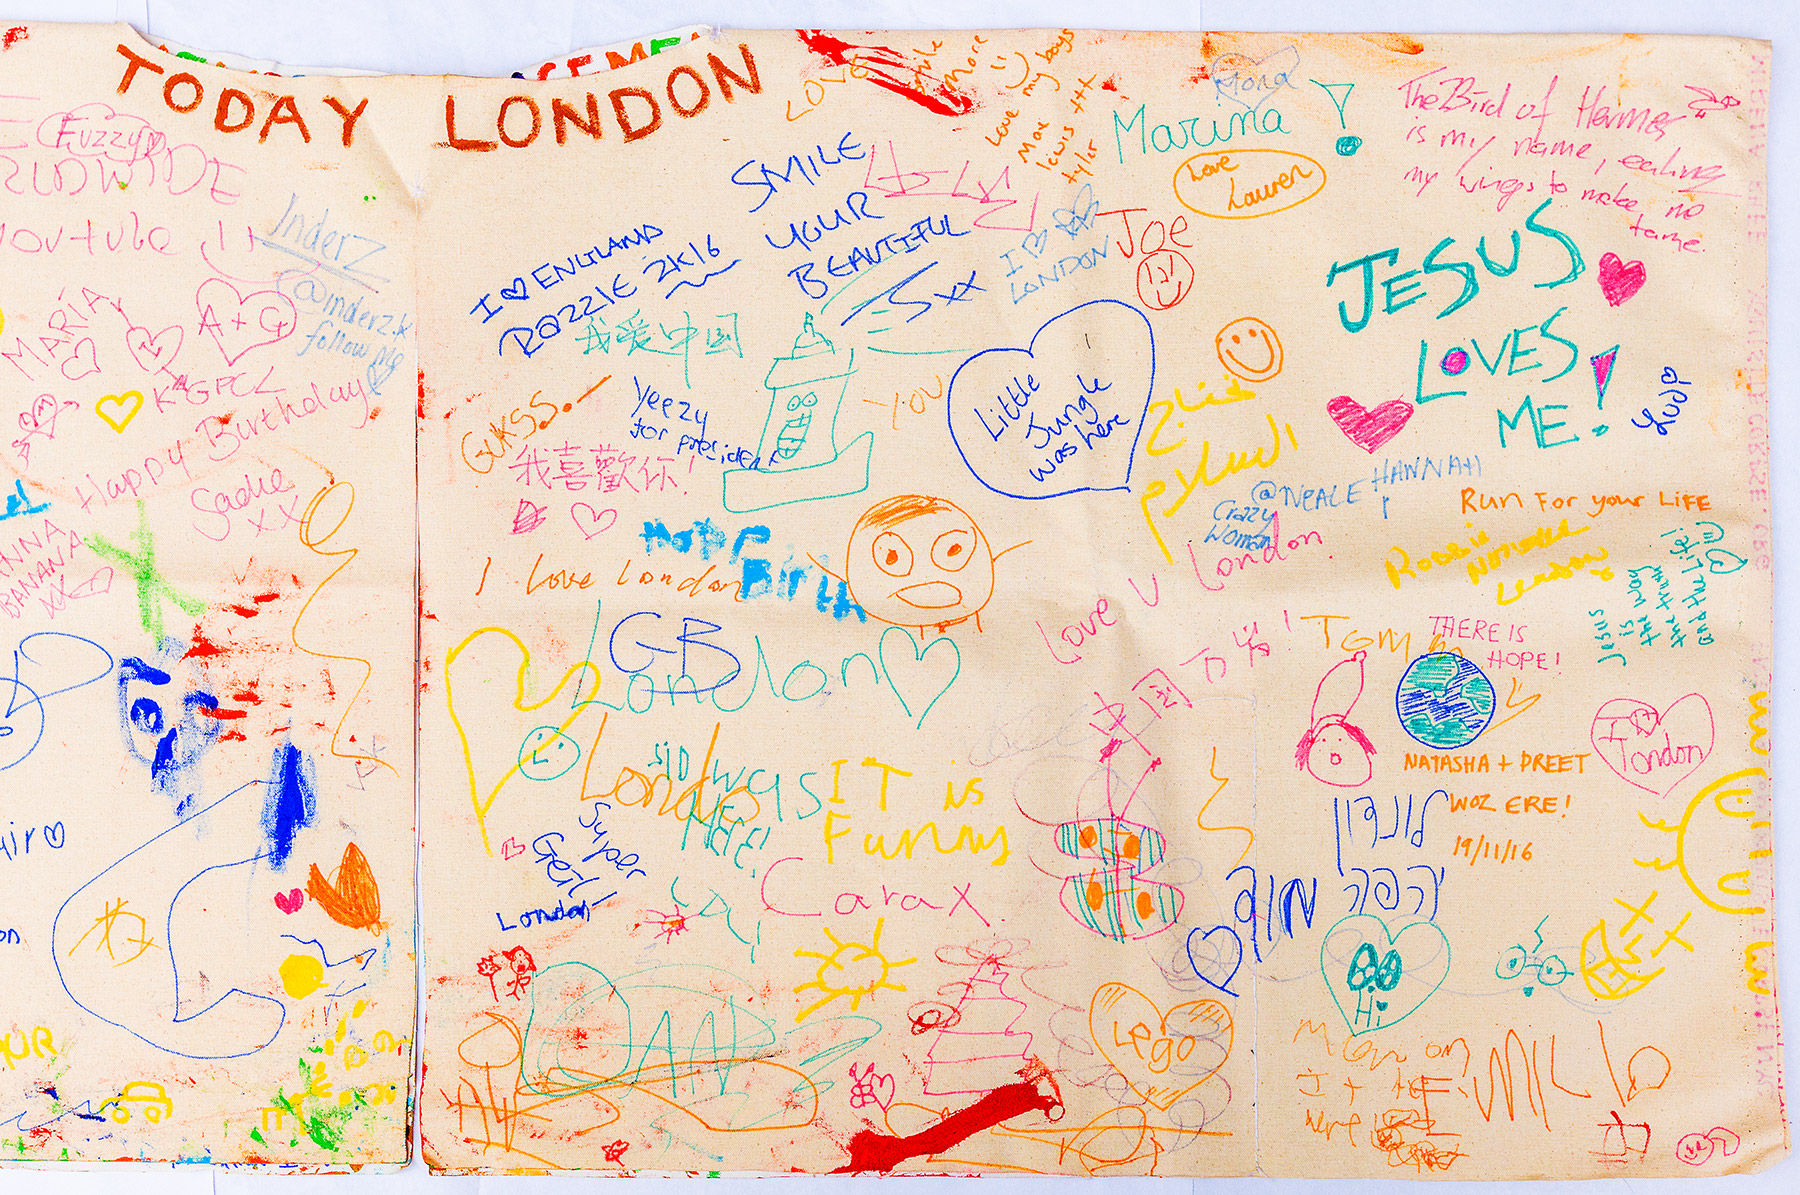 Messages written during Today London – The Flip Side Performance on Leicester Square in London